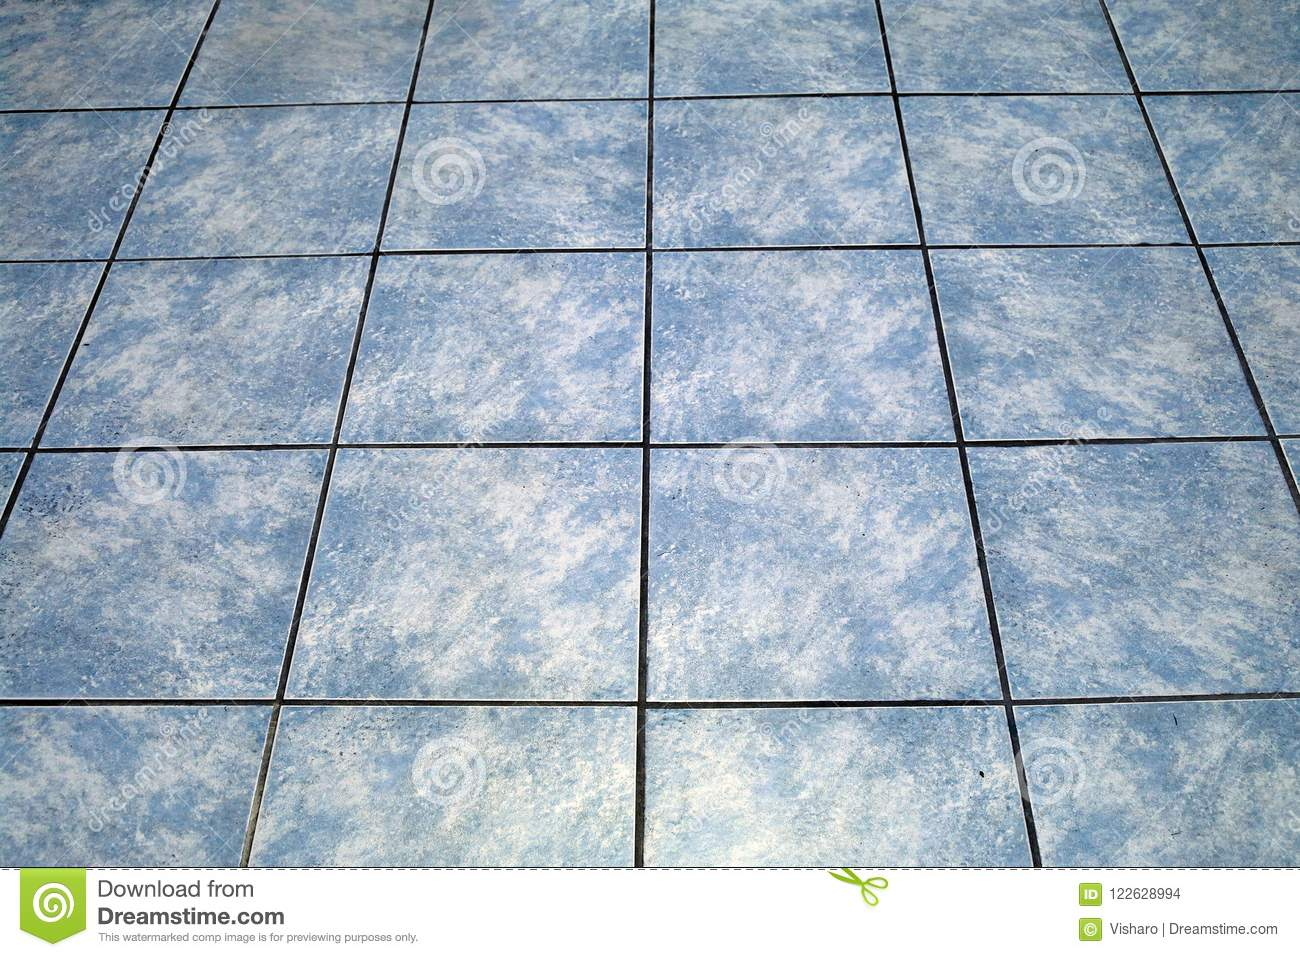 Blue Tiled Floor stock photo. Image of texture, abstract - 122628994